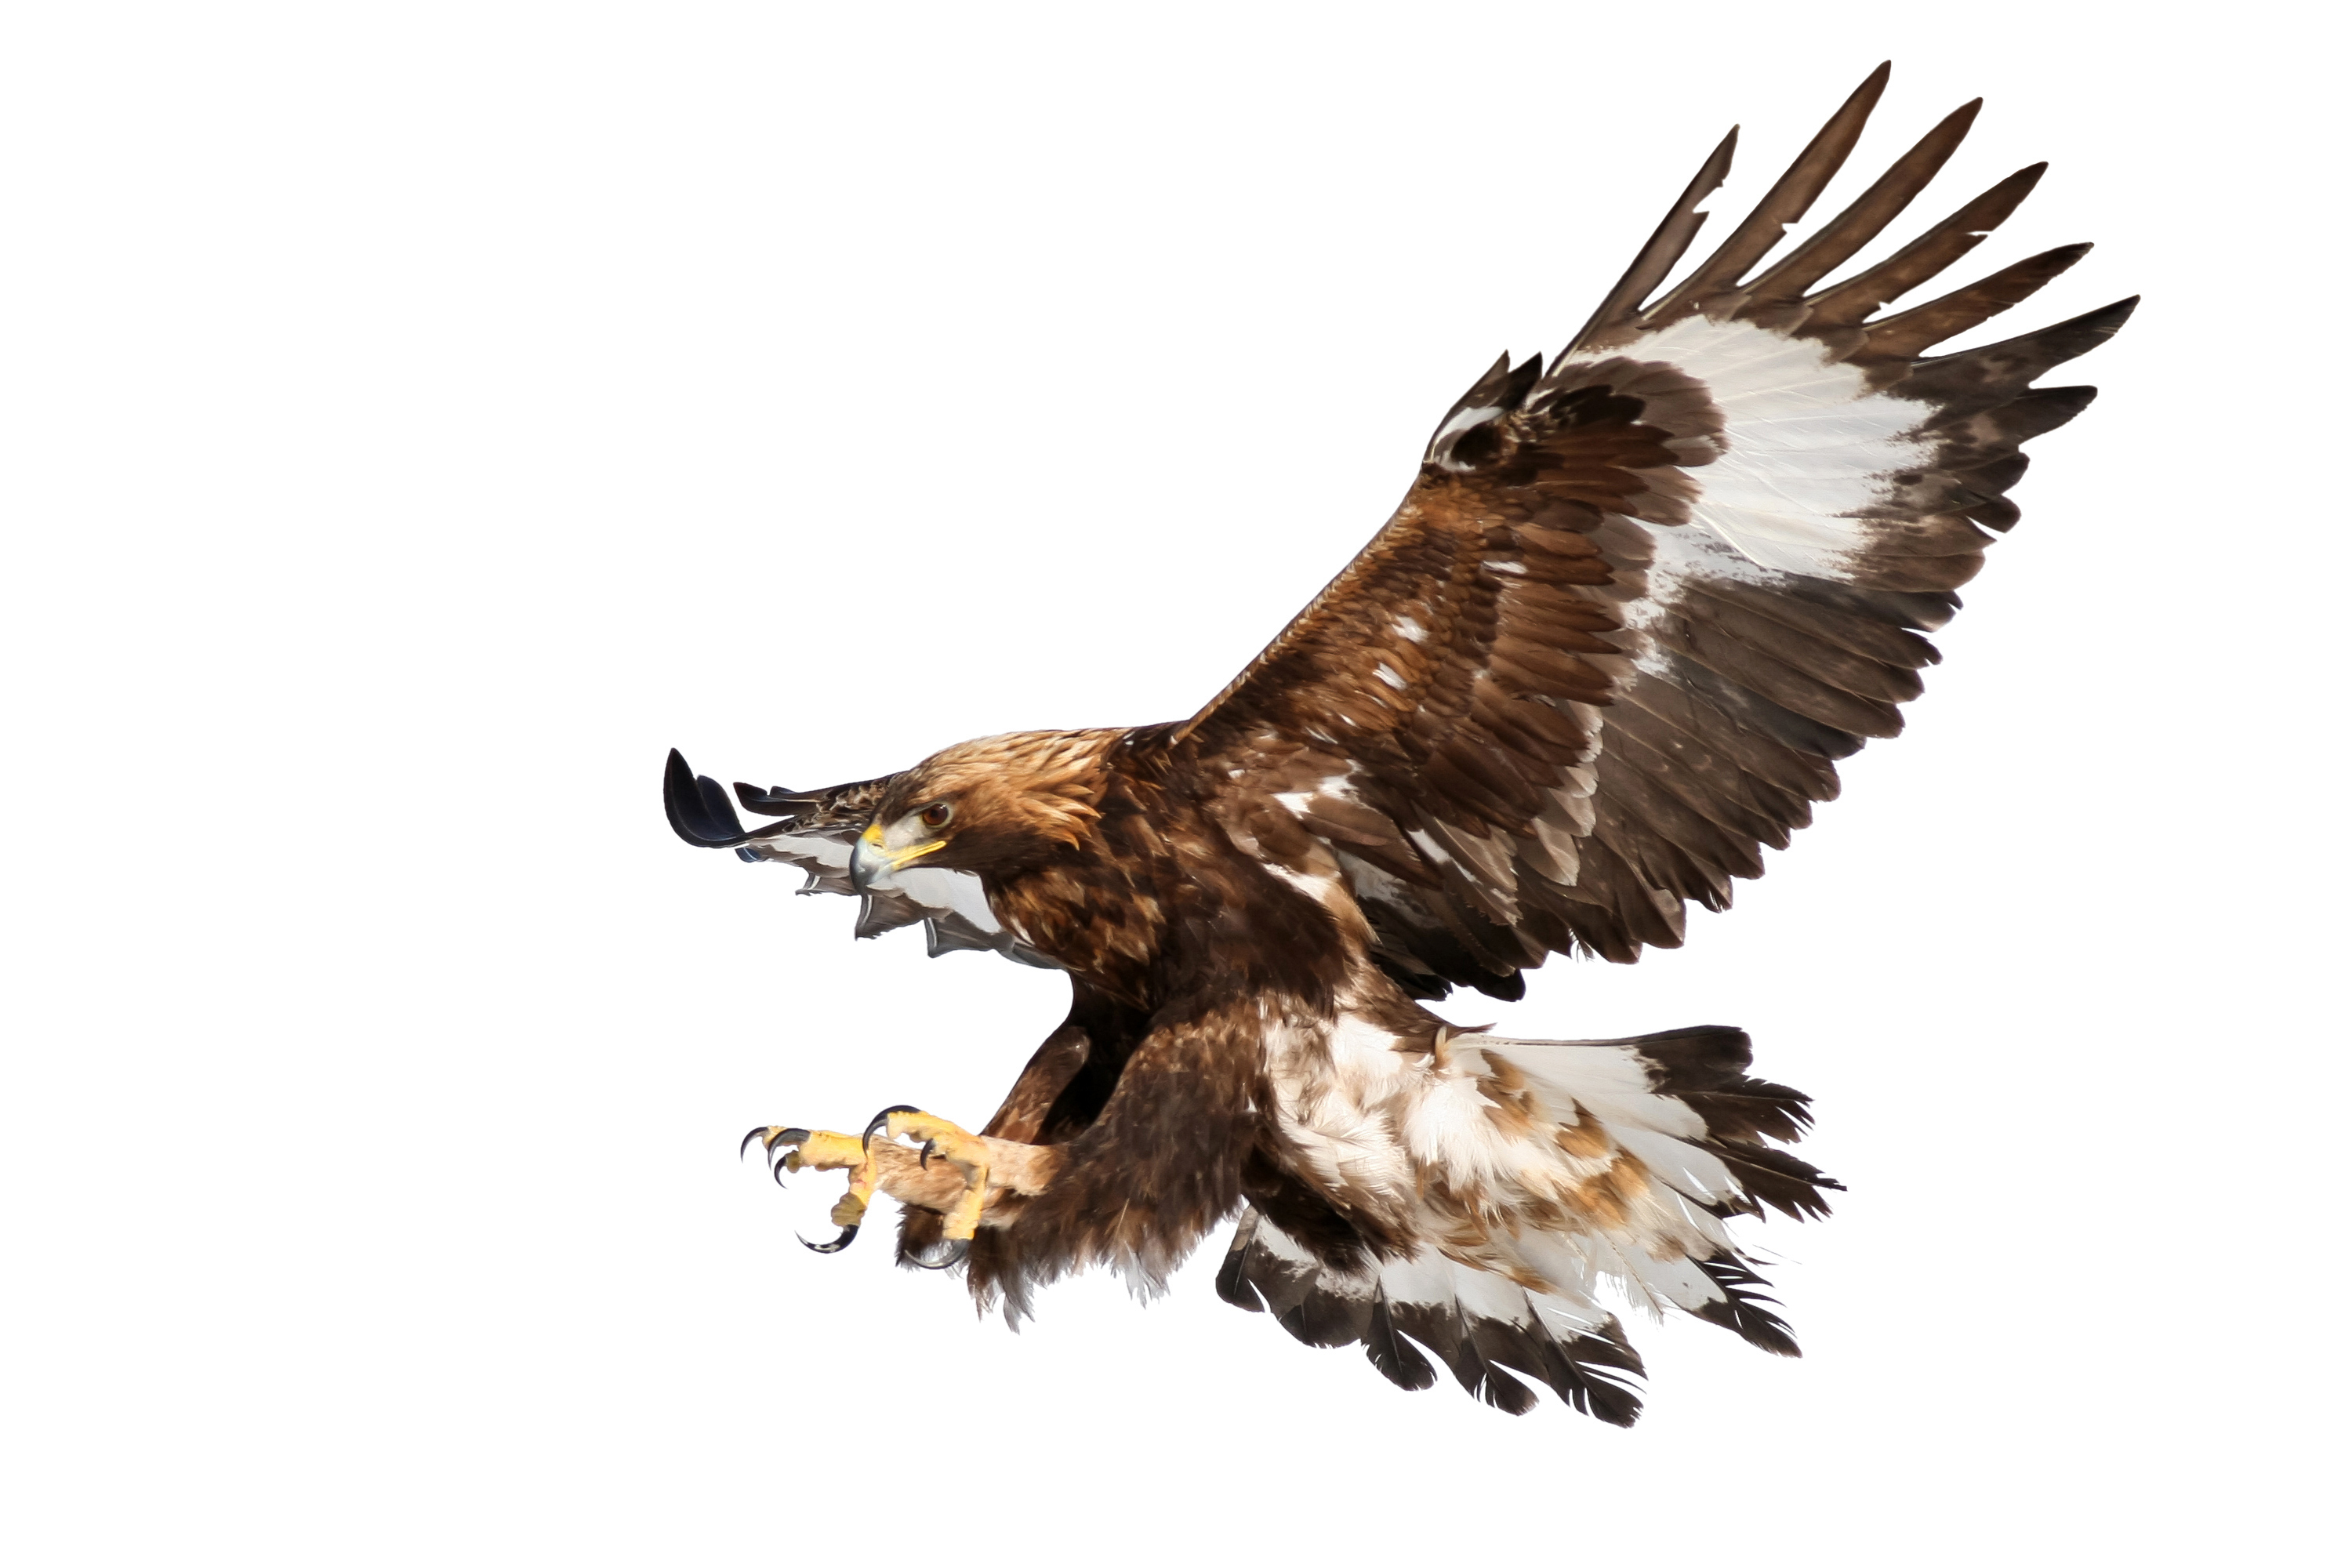 Golden eagle, raptor, isolated on white, landing with outstretched claws ready to grab pray.